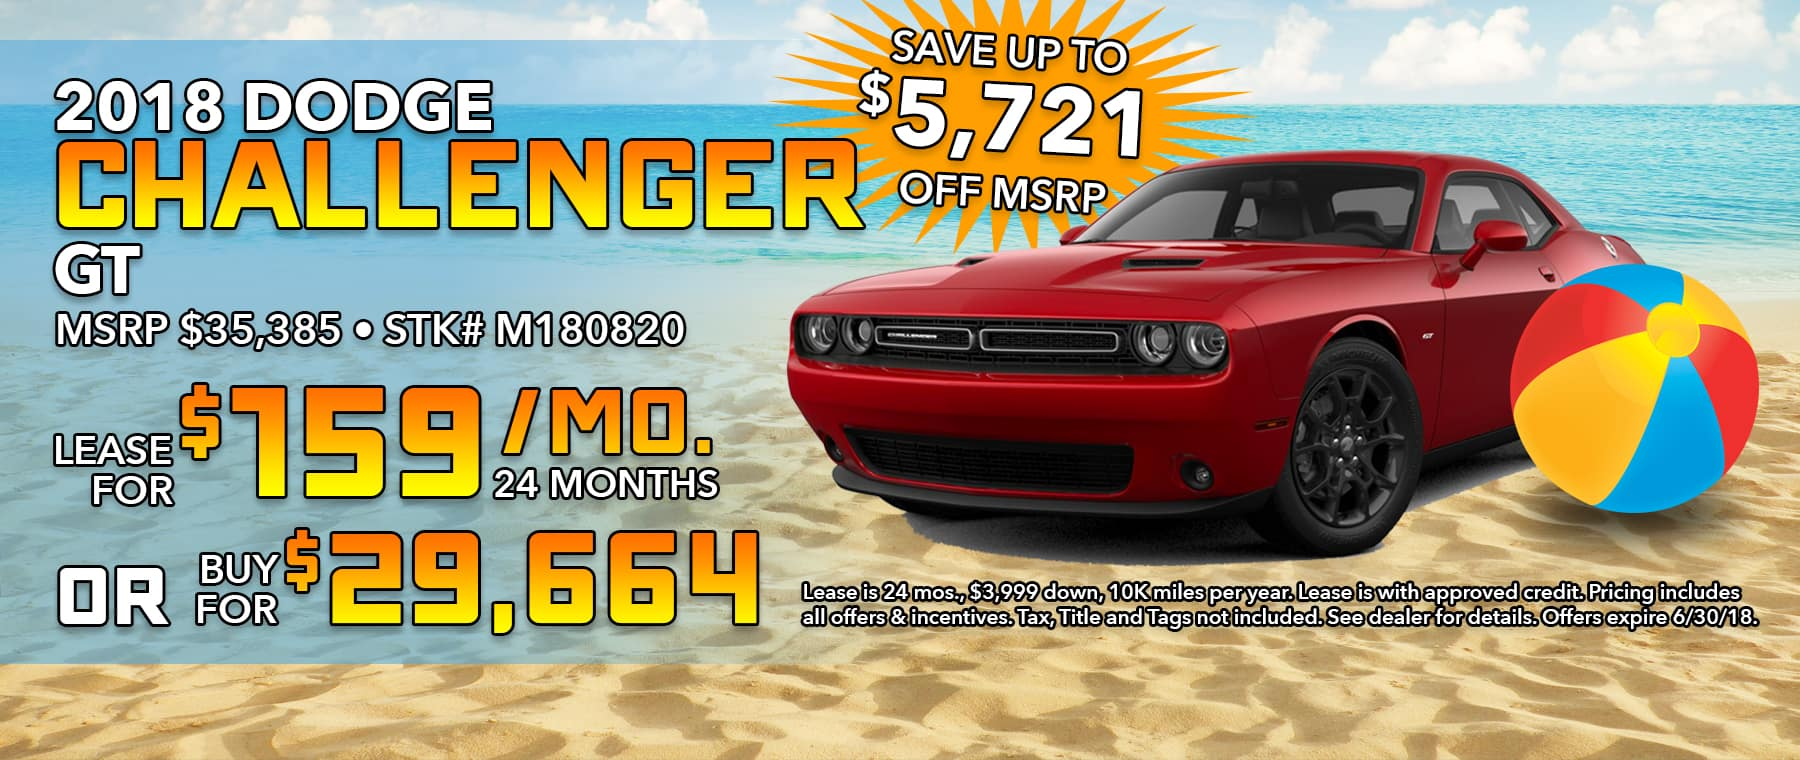 htm ram extra doc fees acq dealers specials dodge conquest jeep tax sale rebates new all loyalty dealer in and reg lease includes ma to chrysler title colonial ends